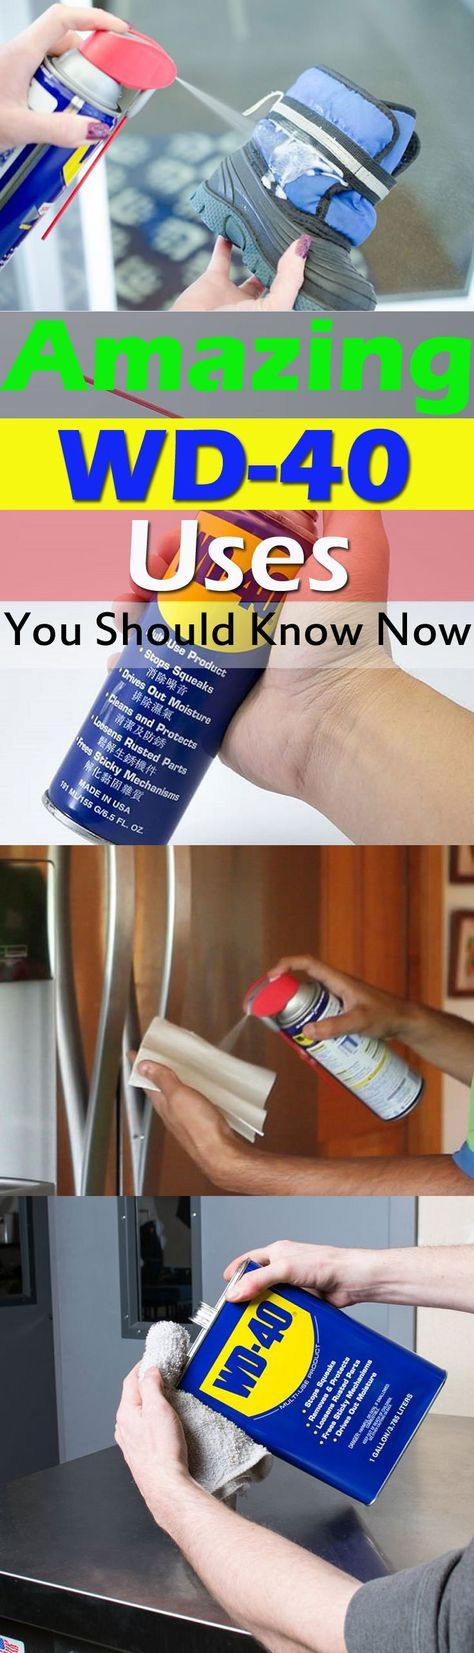 Also called a miracle spray, WD-40 is a multifunctional product and can be used efficiently in your home for many purposes. Check out these WD-40 USES to learn more!